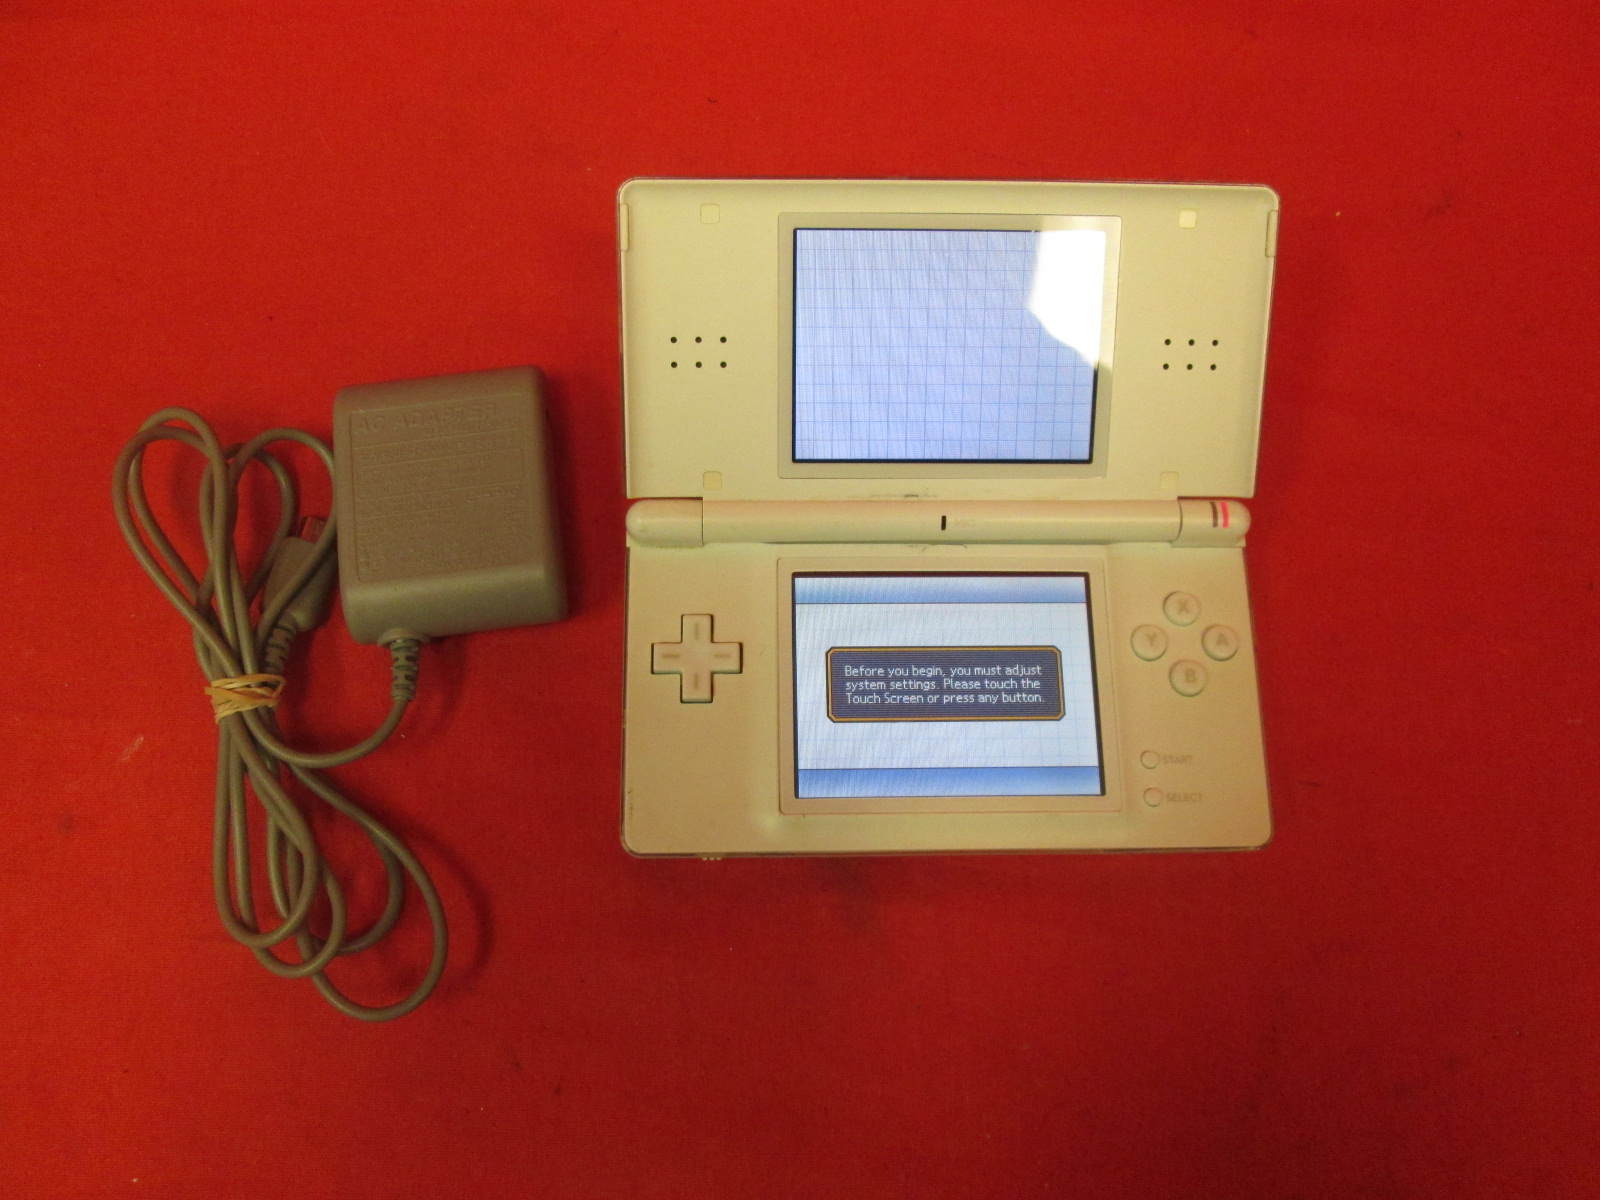 Image 0 of Nintendo DS Lite Polar White Handheld Video Game Console